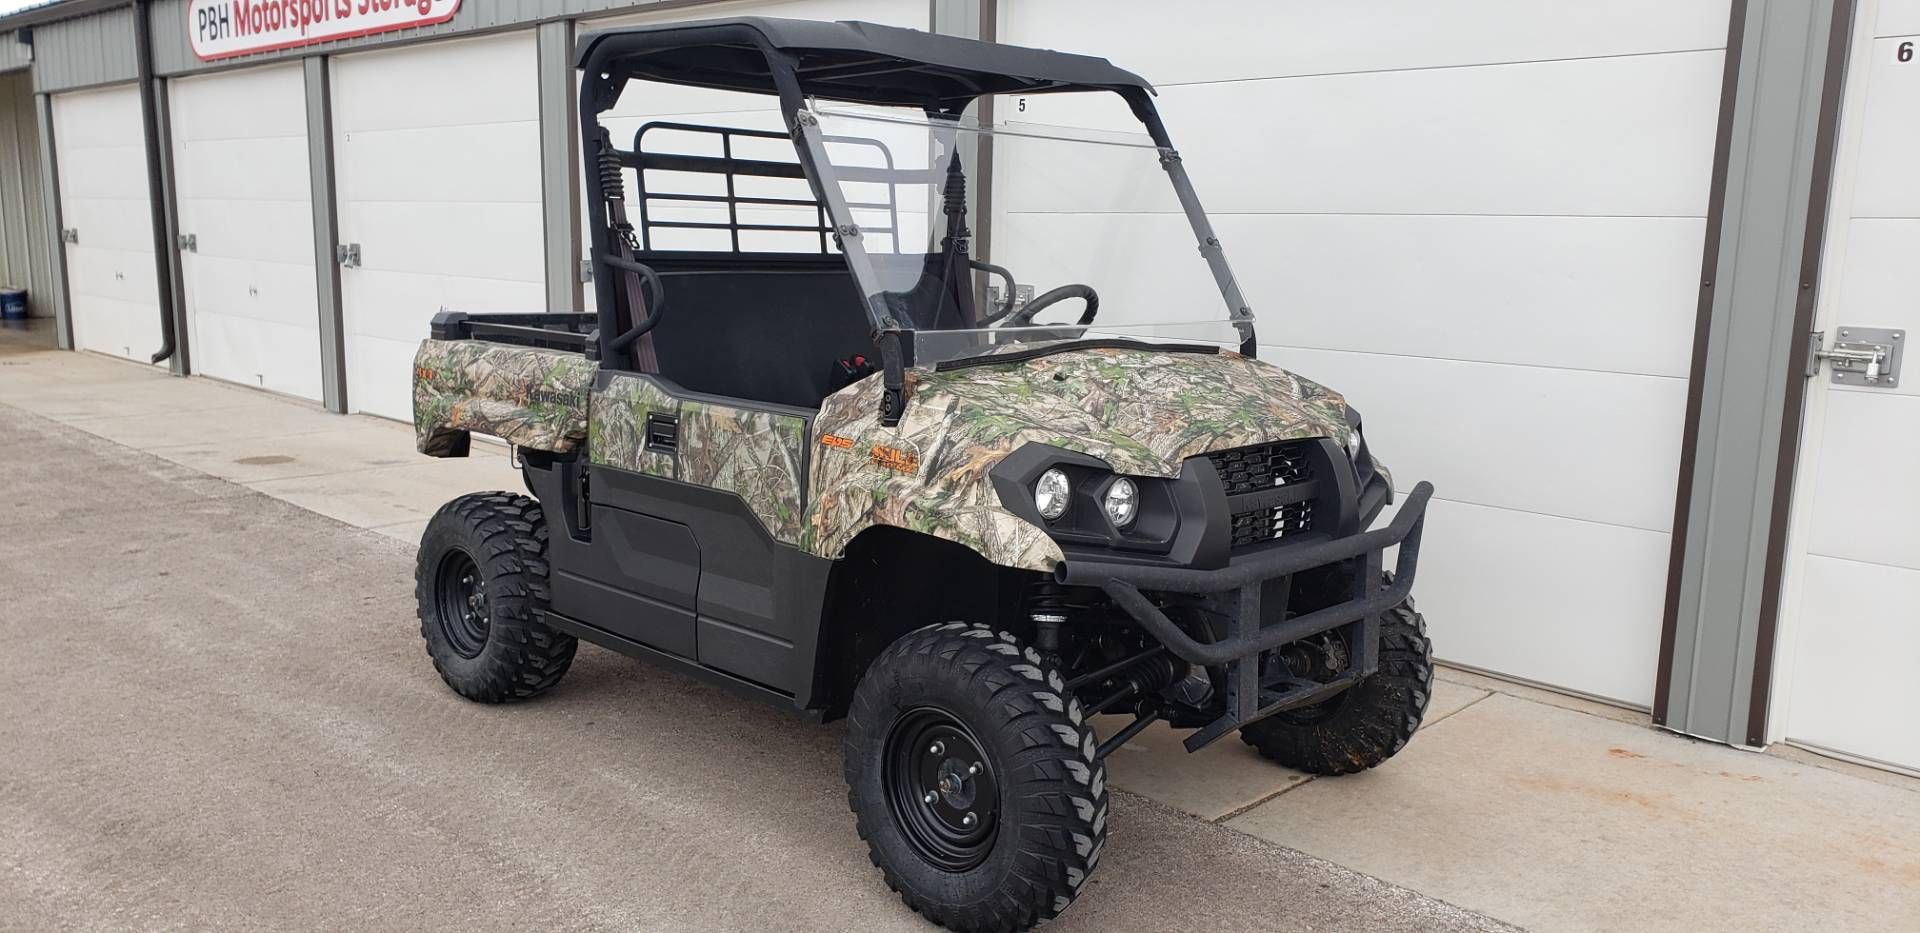 2019 Kawasaki Mule PRO-MX EPS Camo in Rapid City, South Dakota - Photo 2